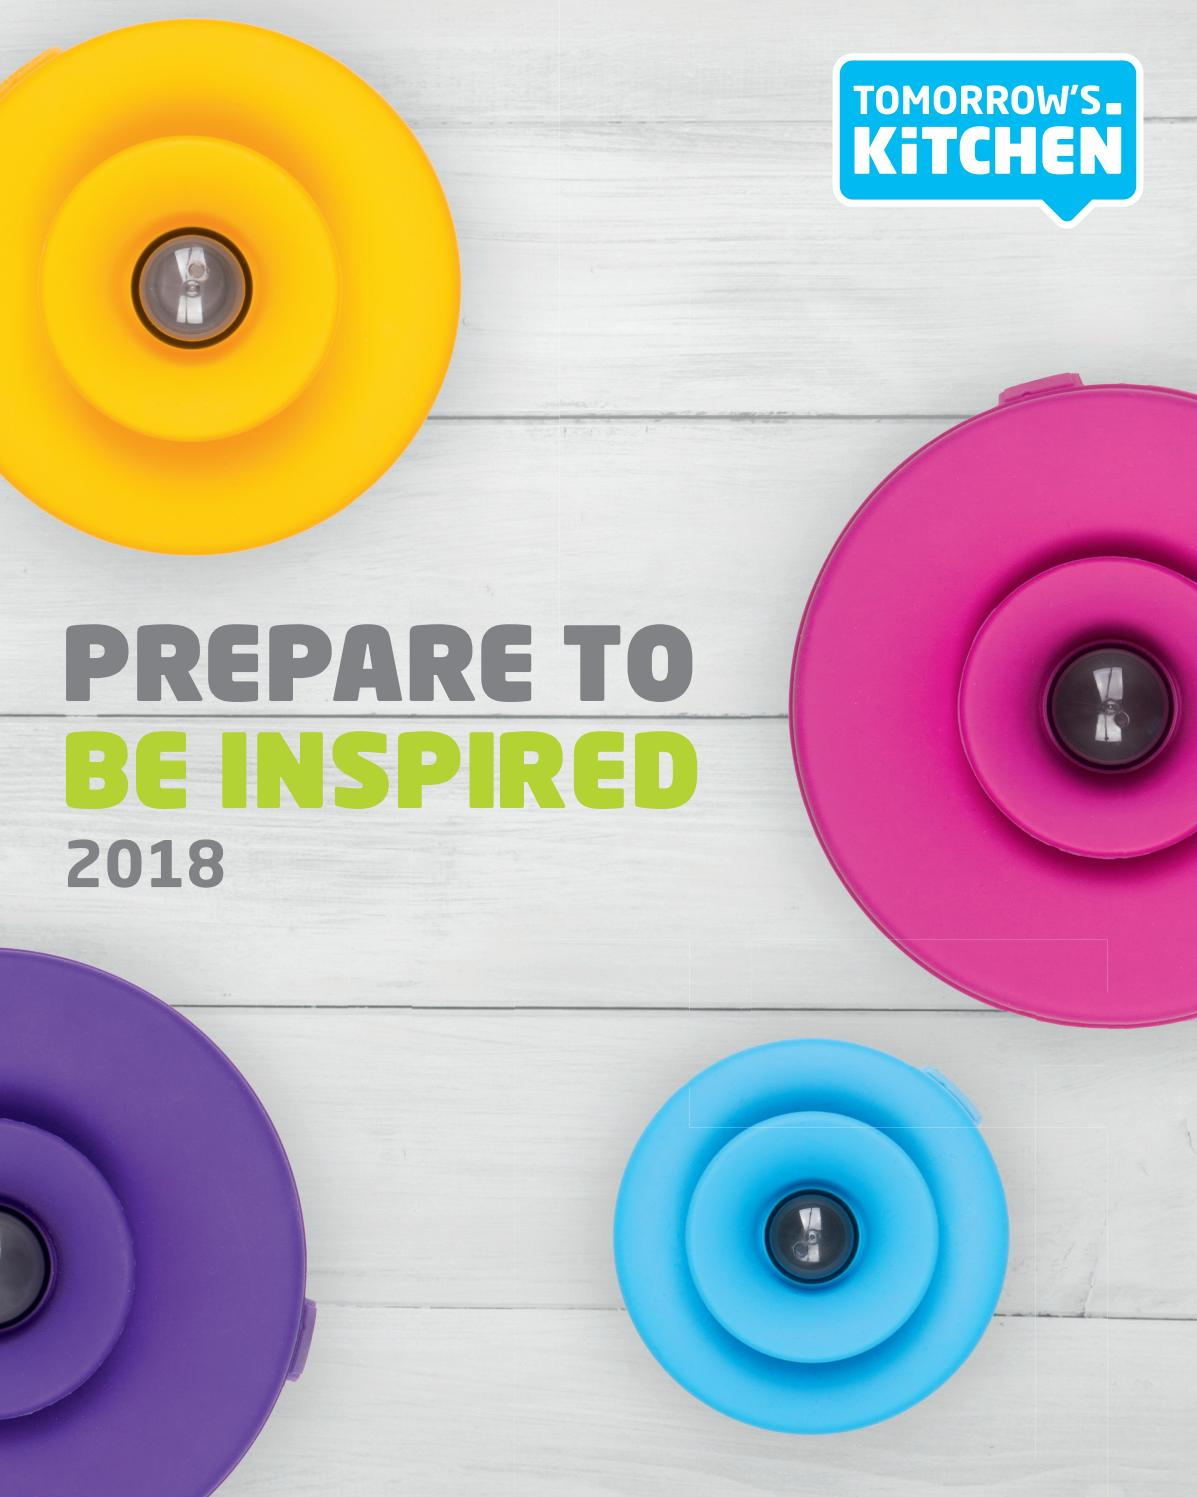 Tomorrow S Kitchen Product Catalog 2018 By Vacu Vin Issuu